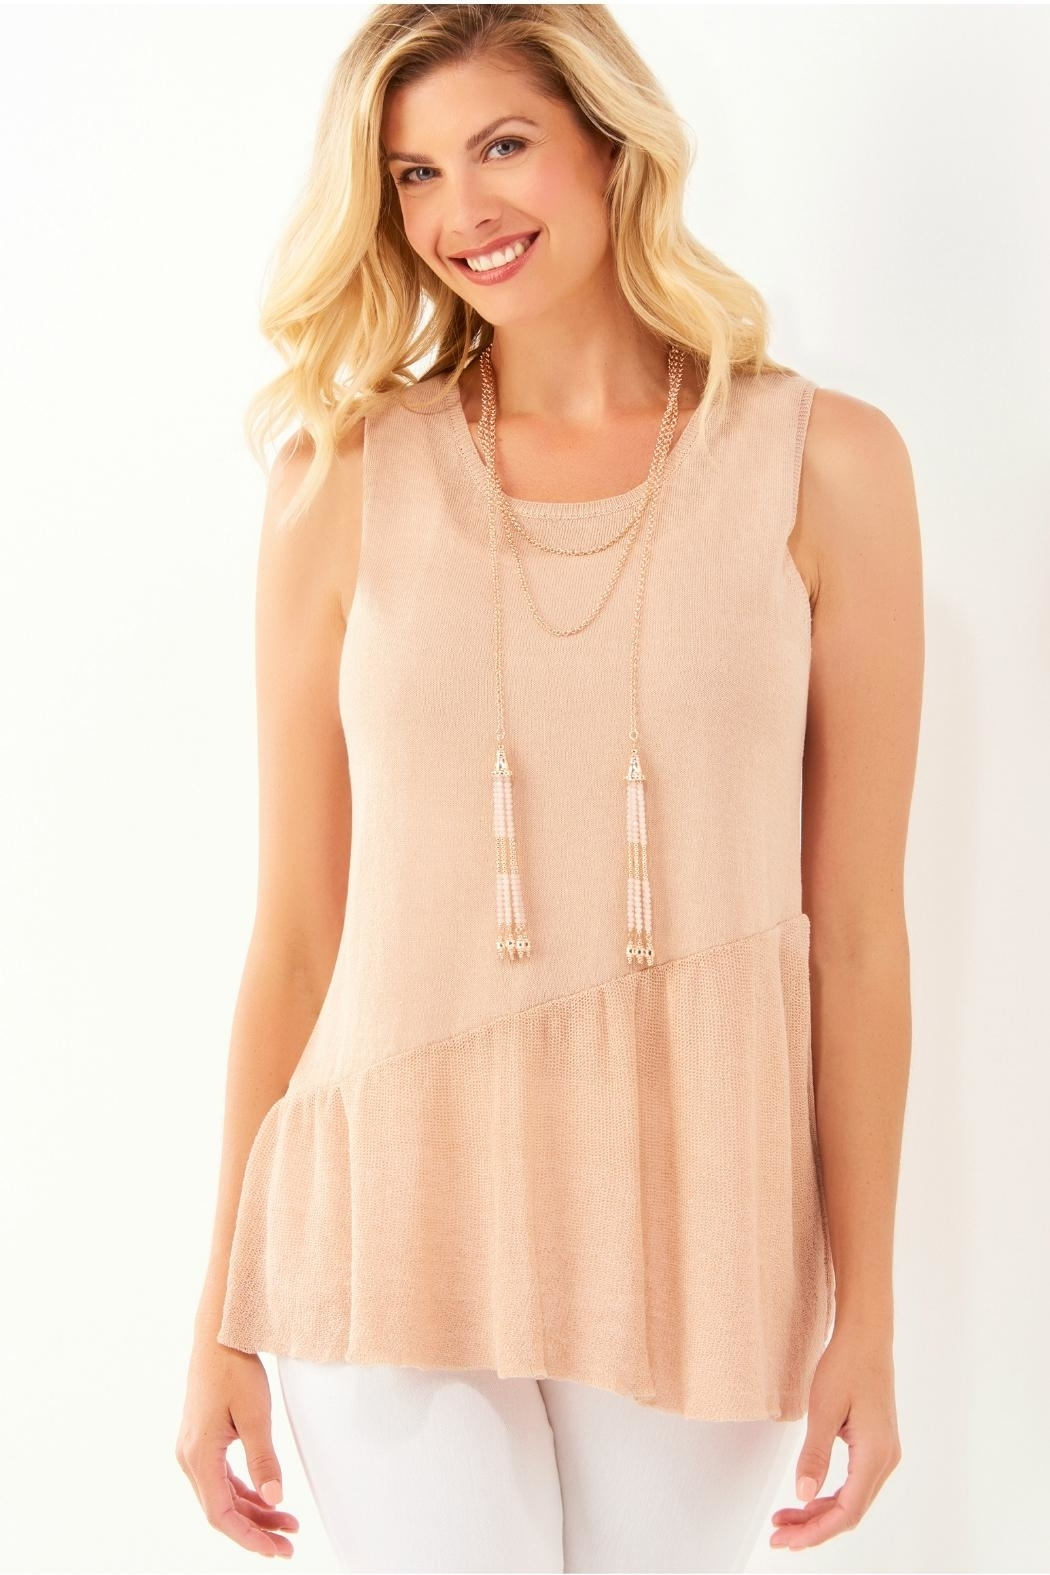 Charlie Paige Beaded Tassel Necklace - Front Full Image